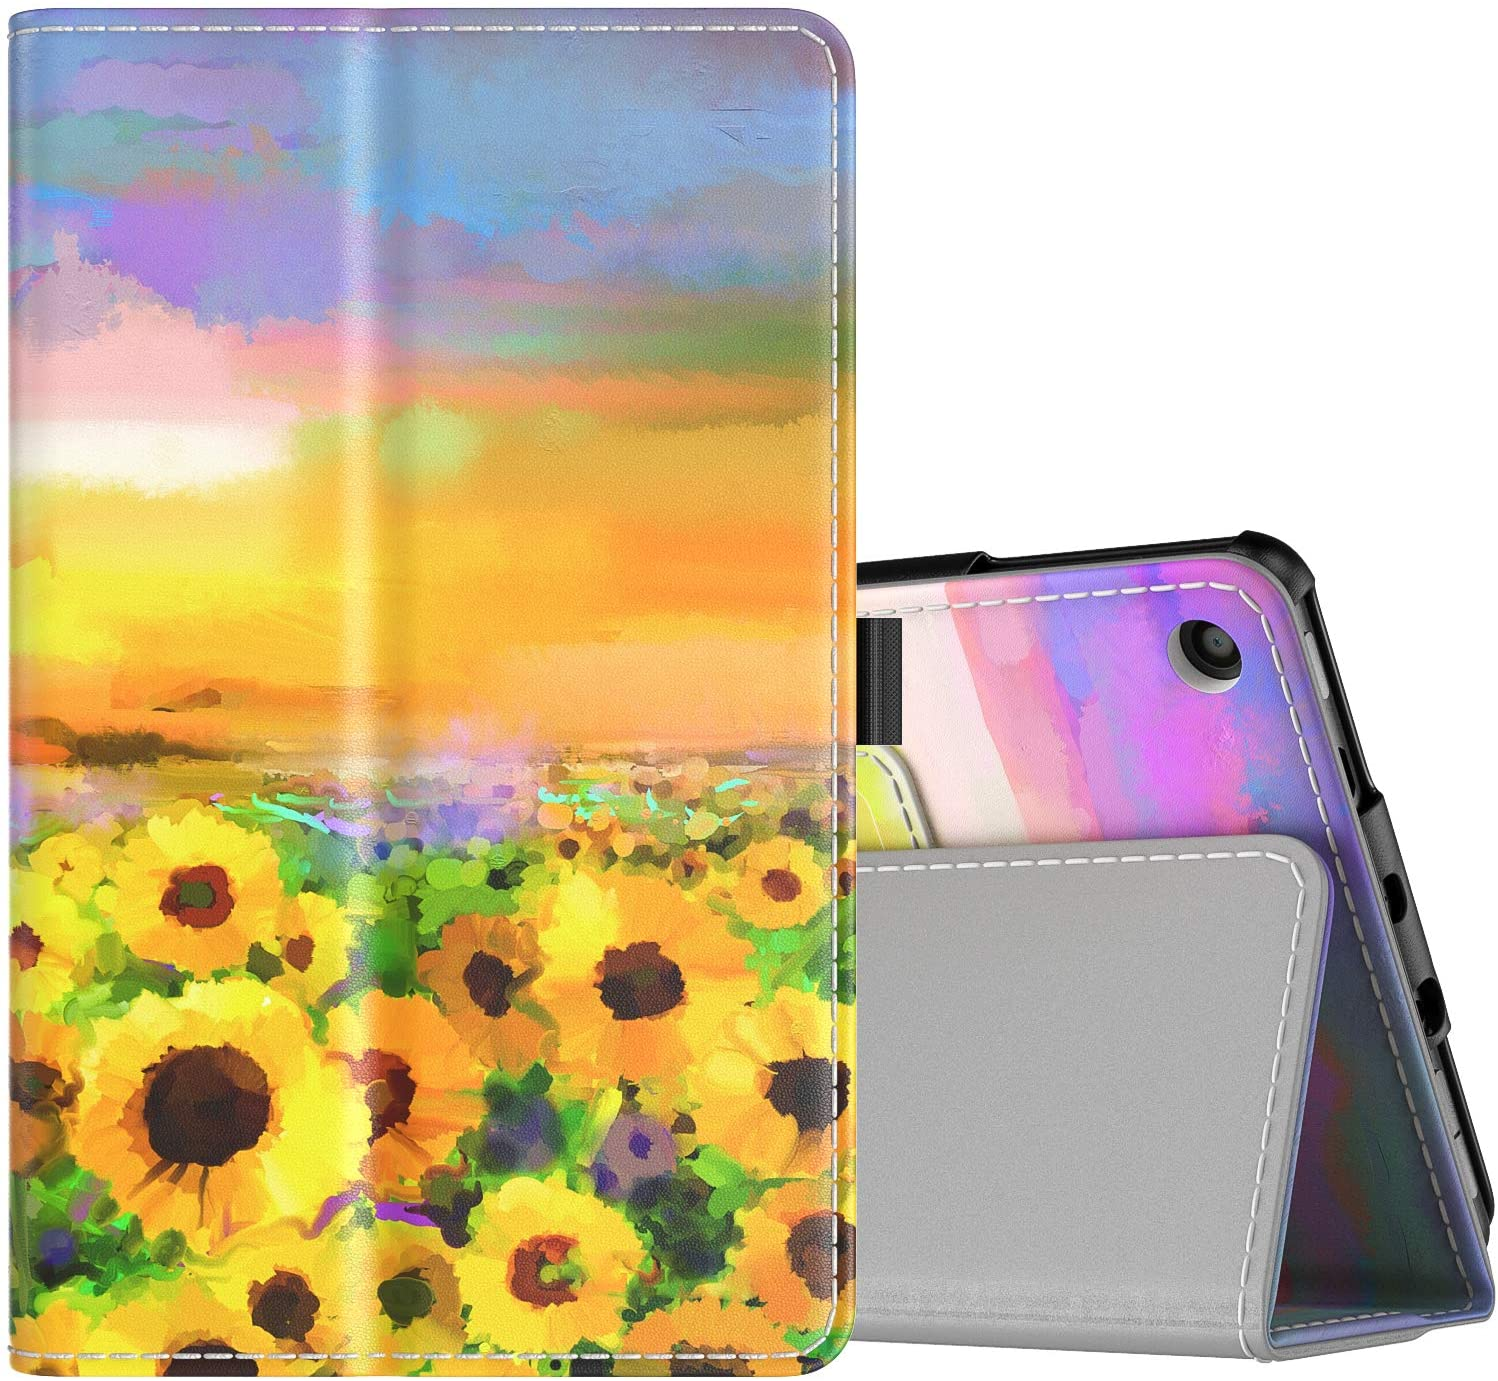 TiMOVO Case Fits All-New Fire 7 Tablet (9th Generation, 2019 Release) - Lightweight Smart Shell Slim Folding Cover Case with Auto Wake/Sleep Fit DHgate Fire 7 Tablet - Sunflower